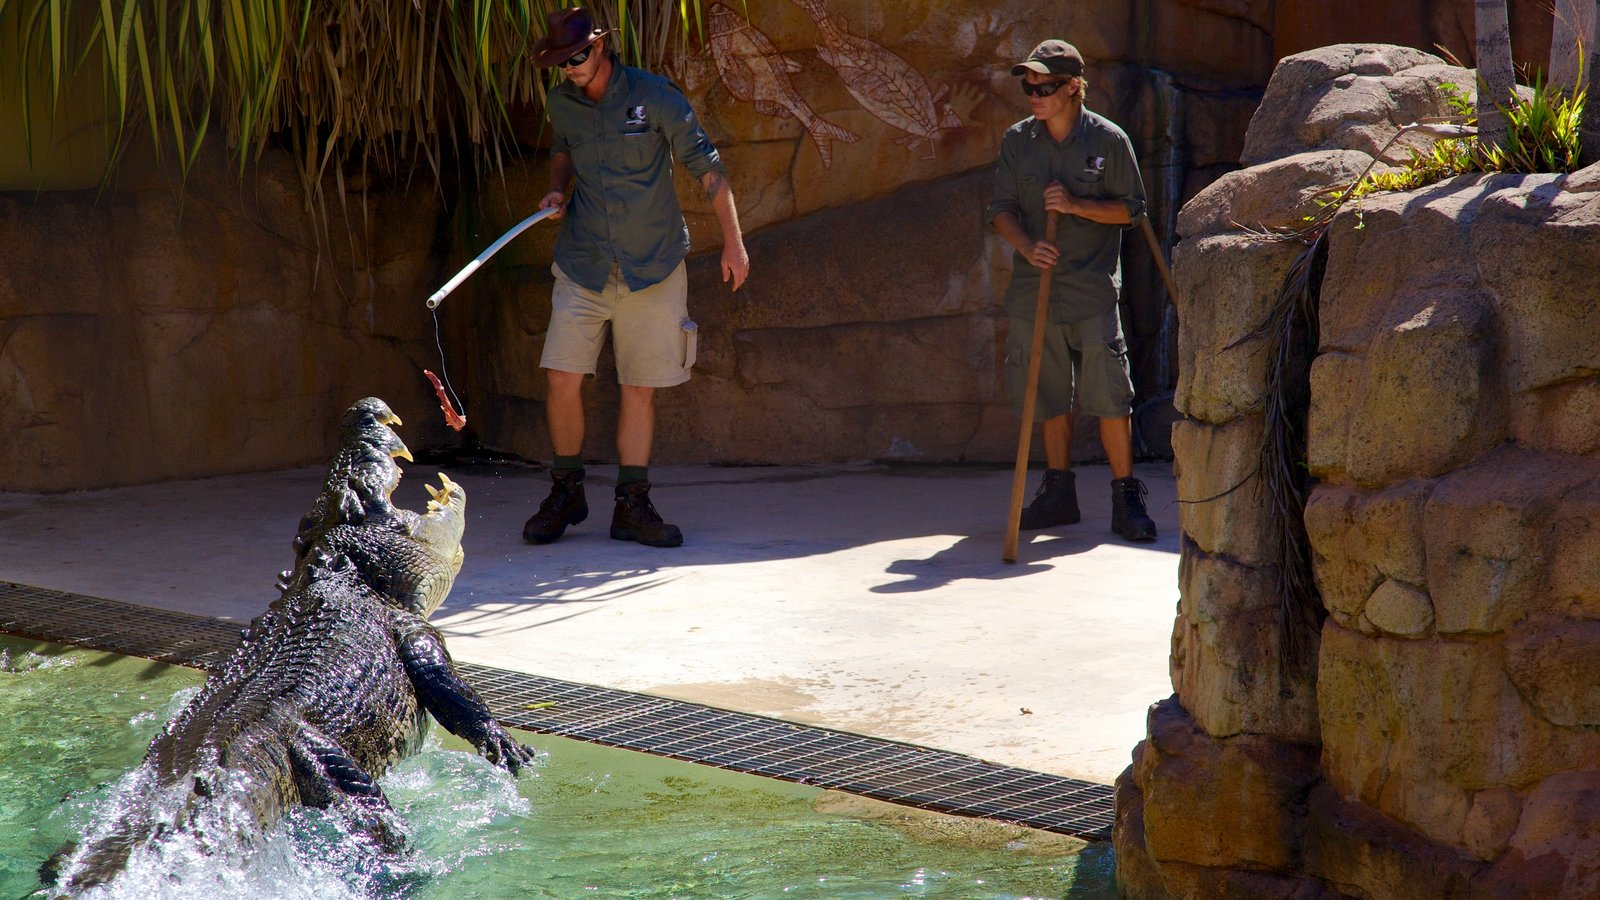 Crocosaurus Cove featuring dangerous animals and zoo animals as well as a small group of people